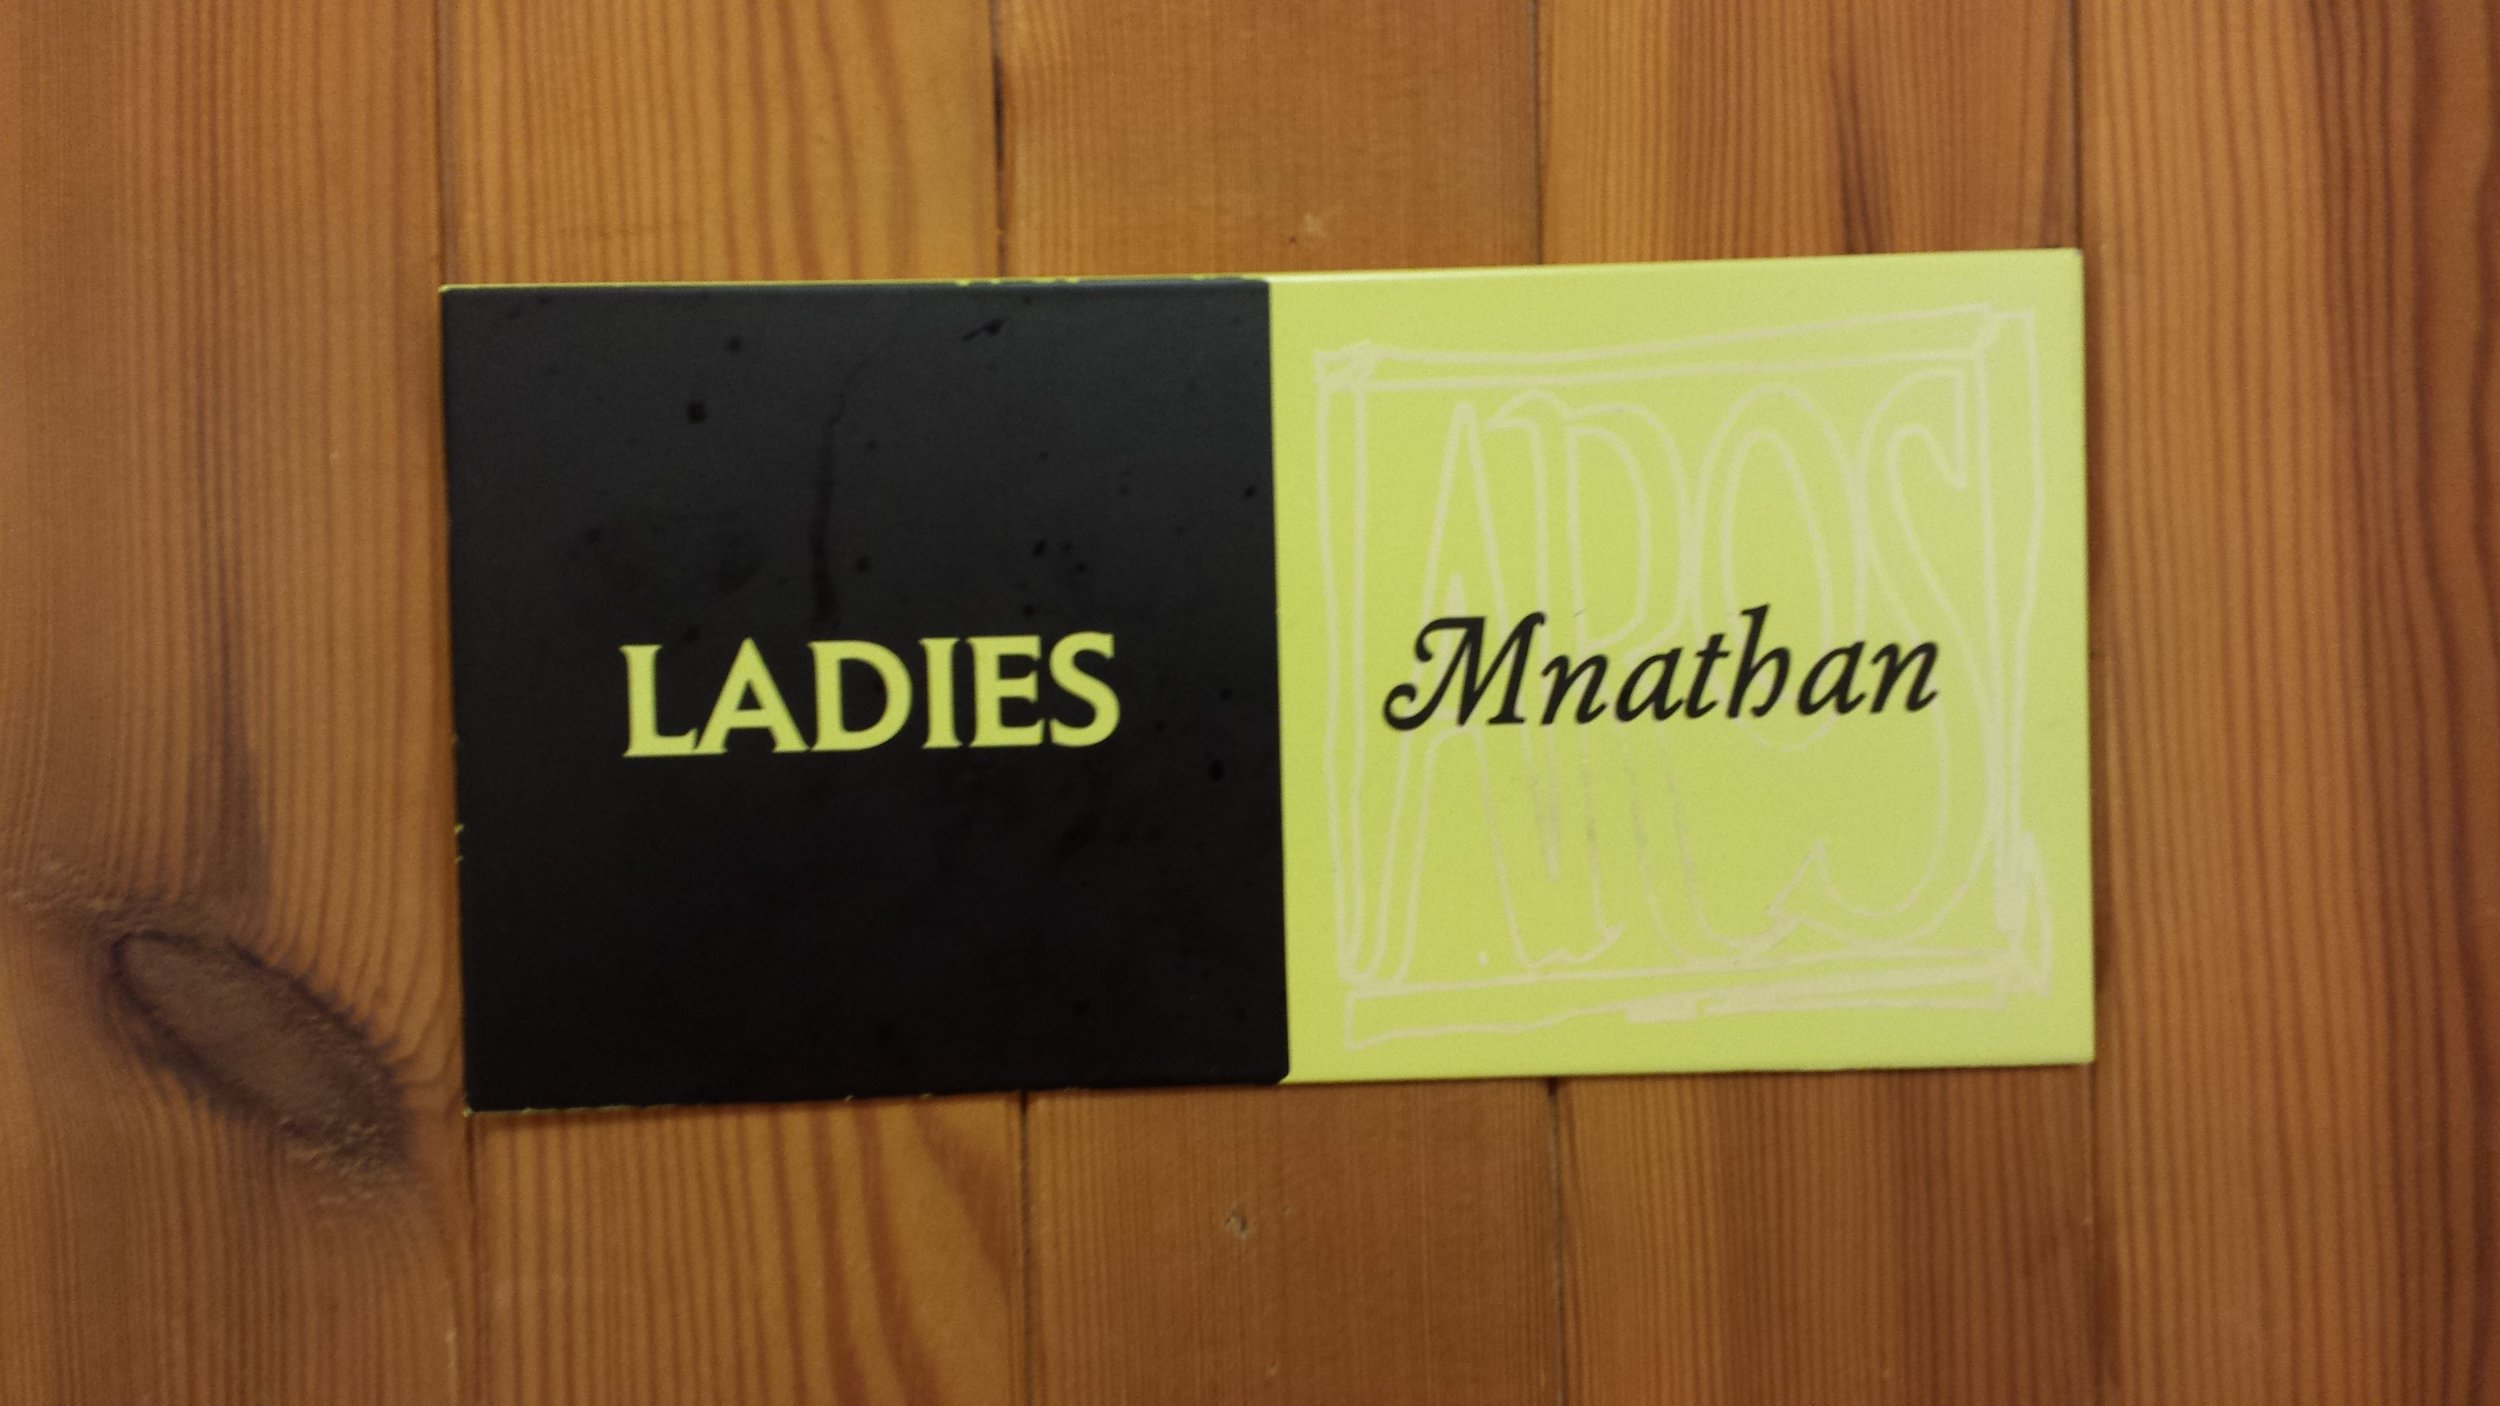 20160903_115537 Gaelic for ladies.jpg